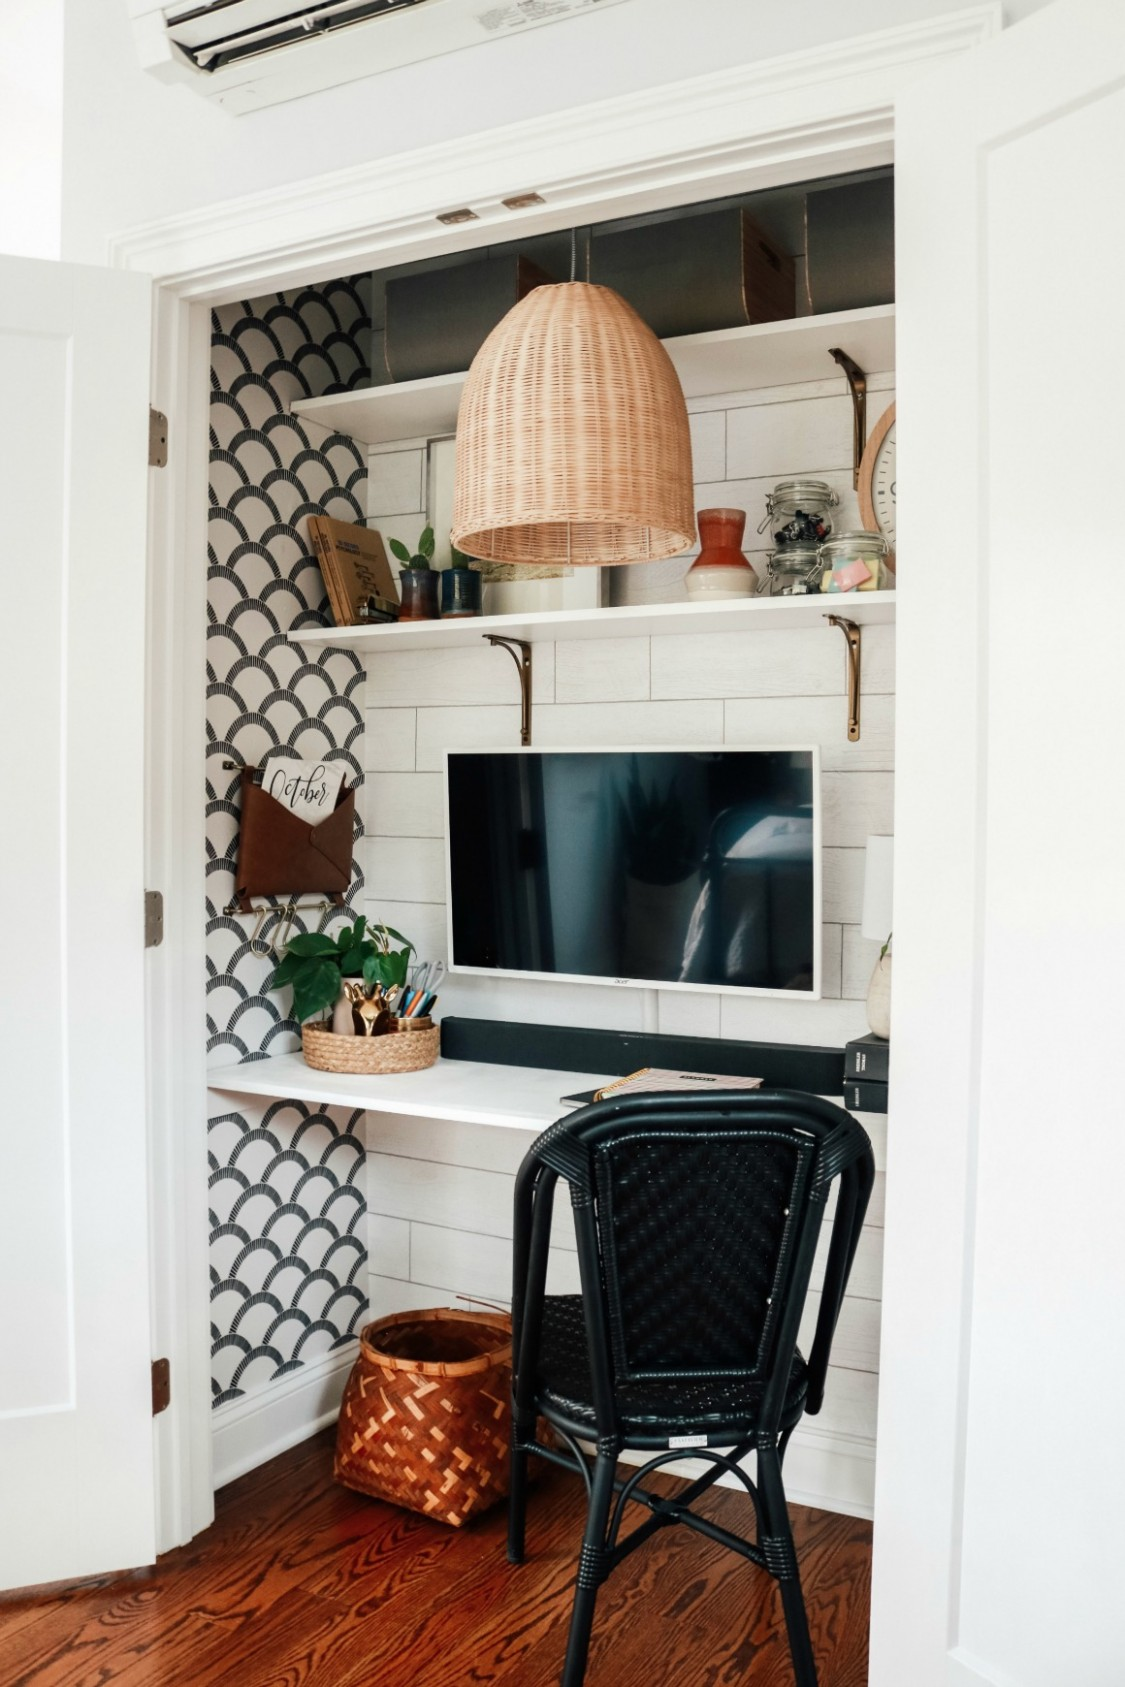 """Cloffice"""" Closet turned into an Office- Small Space Hack - Nesting  - Closet Office Ideas"""